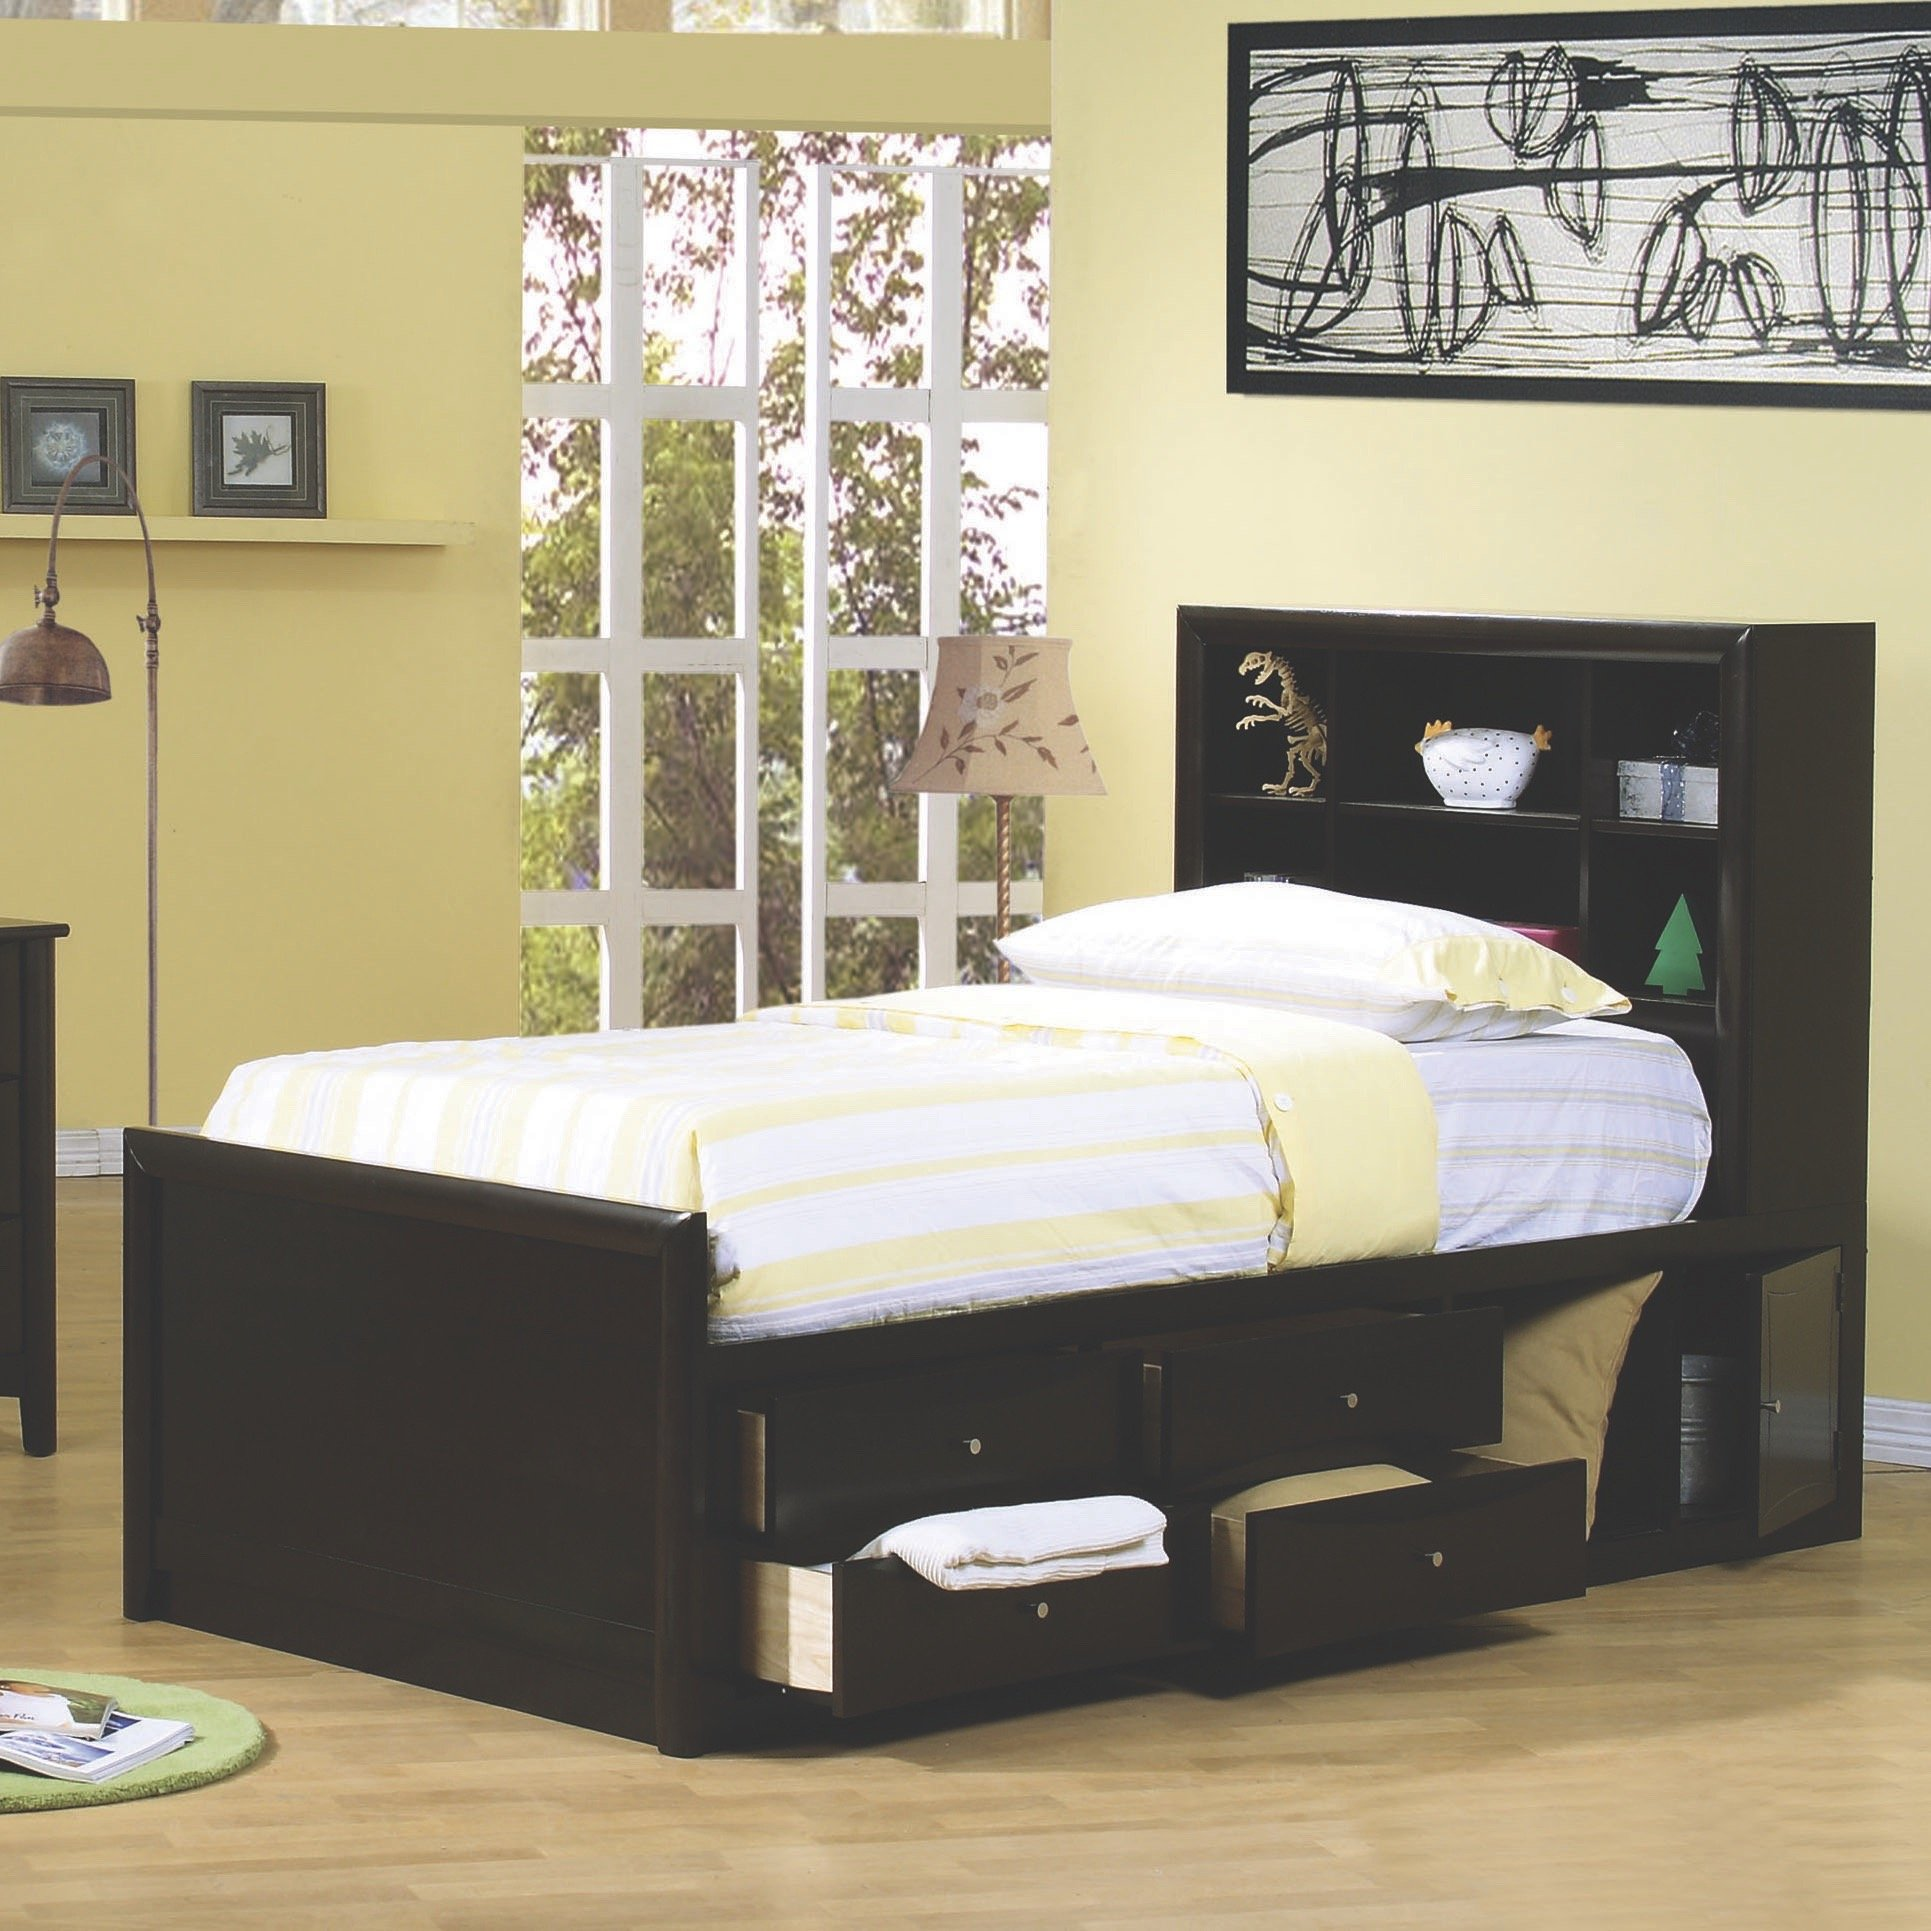 Coaster Home Furnishings 400180T Transitional Bed, Twin, Cappuccino